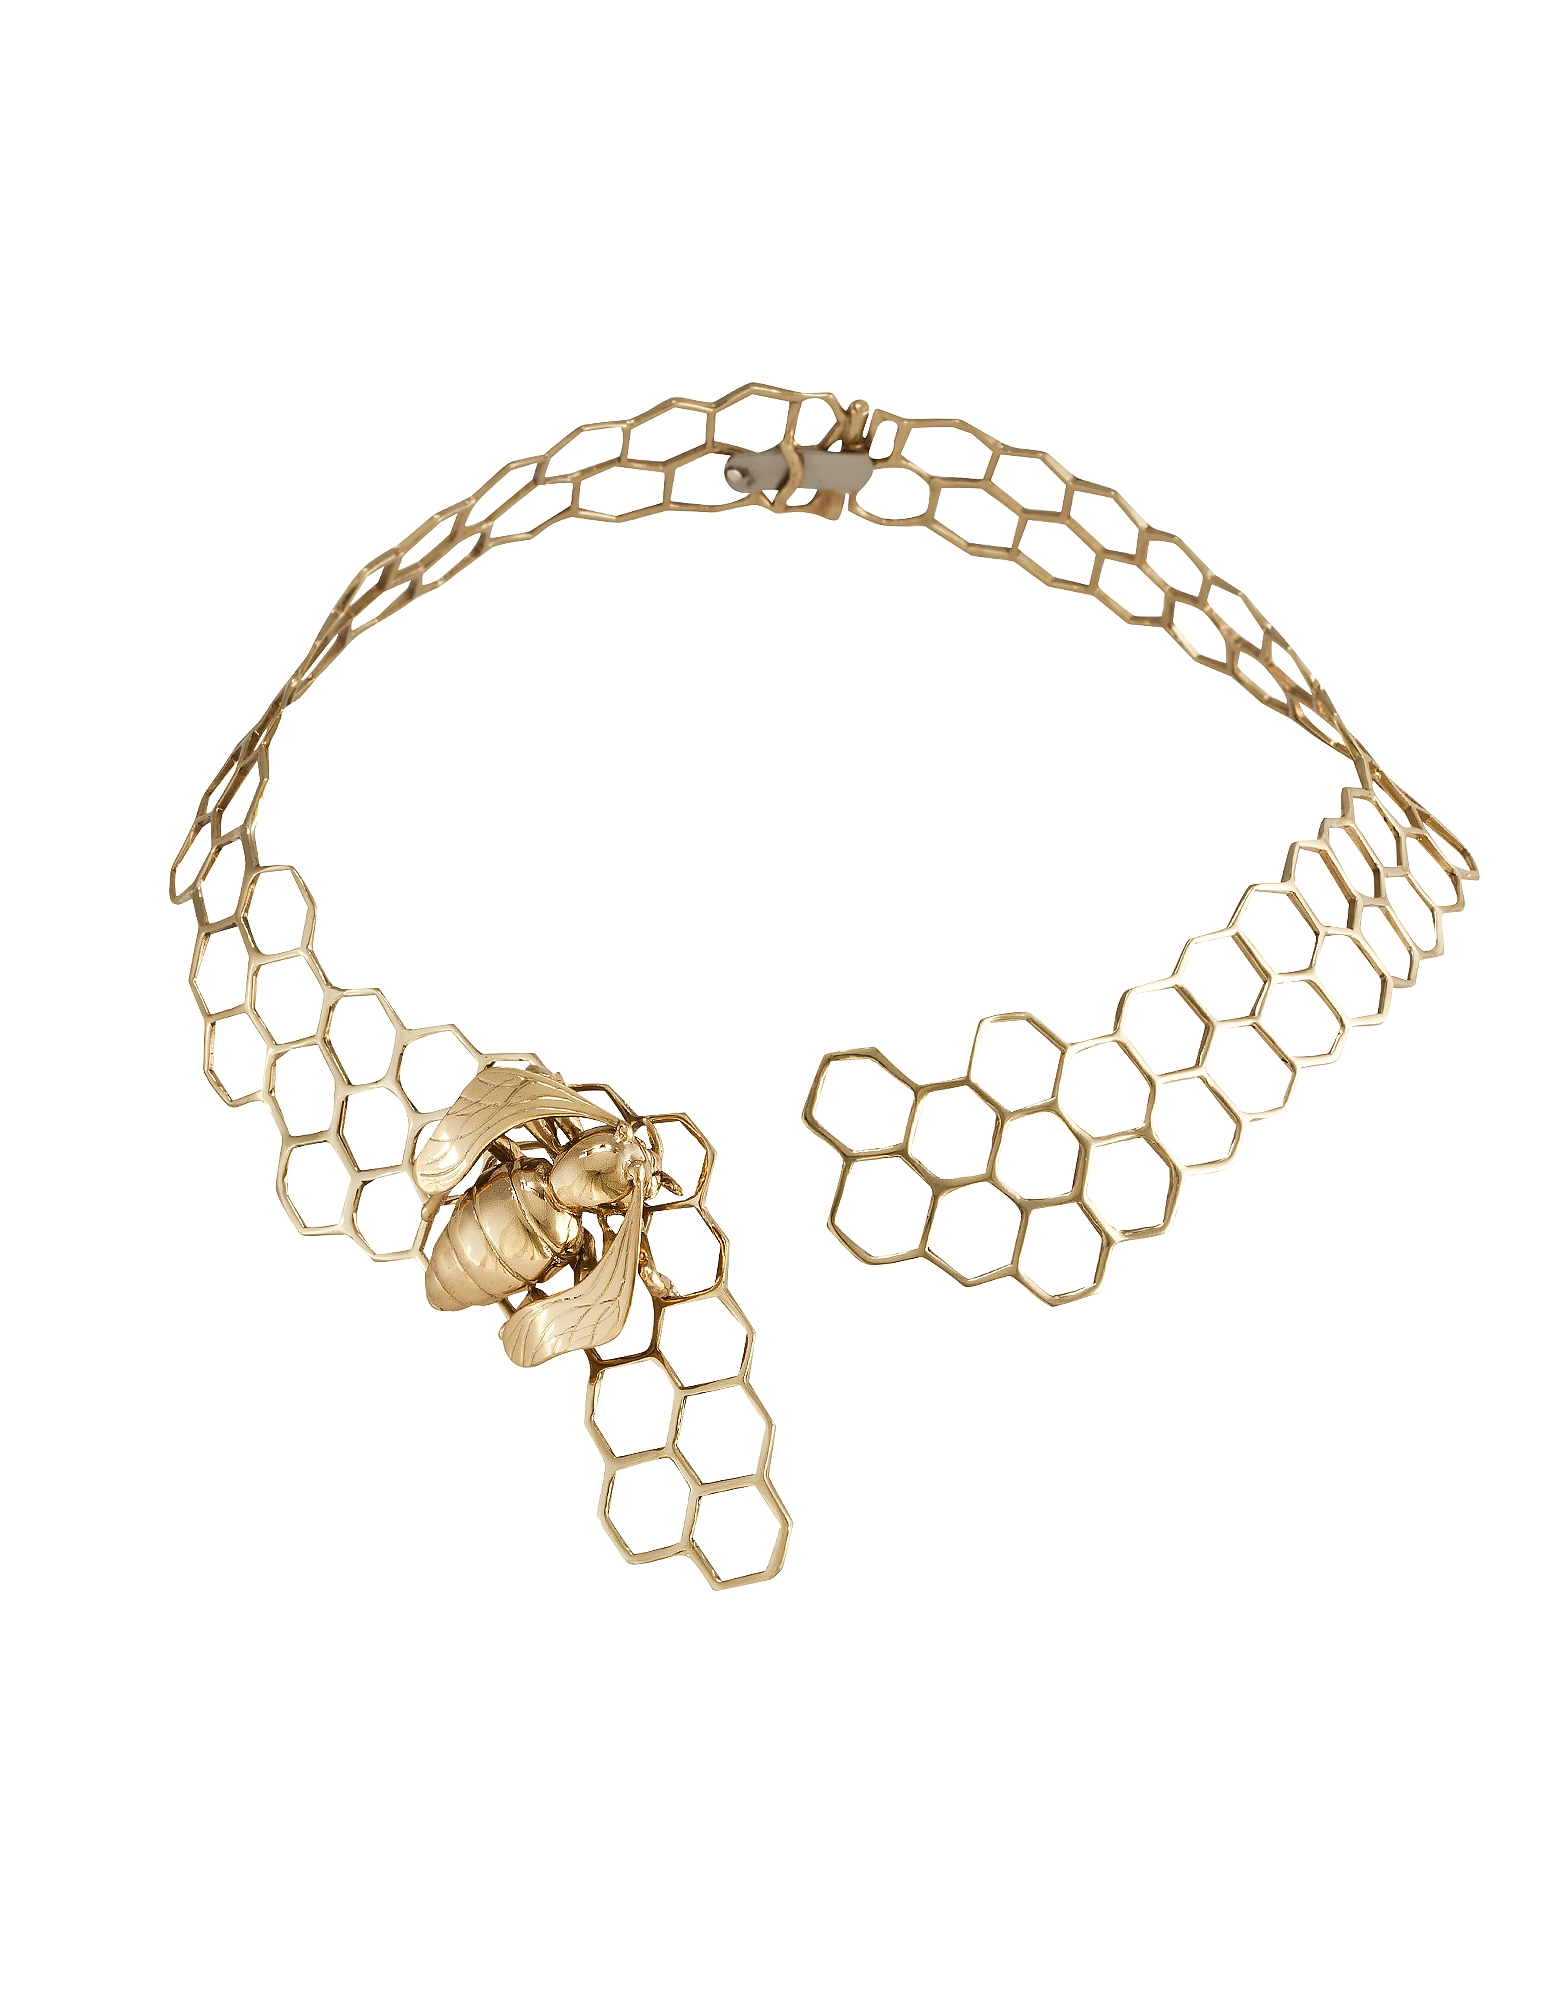 Brass Honeycomb Necklace w/ Bee